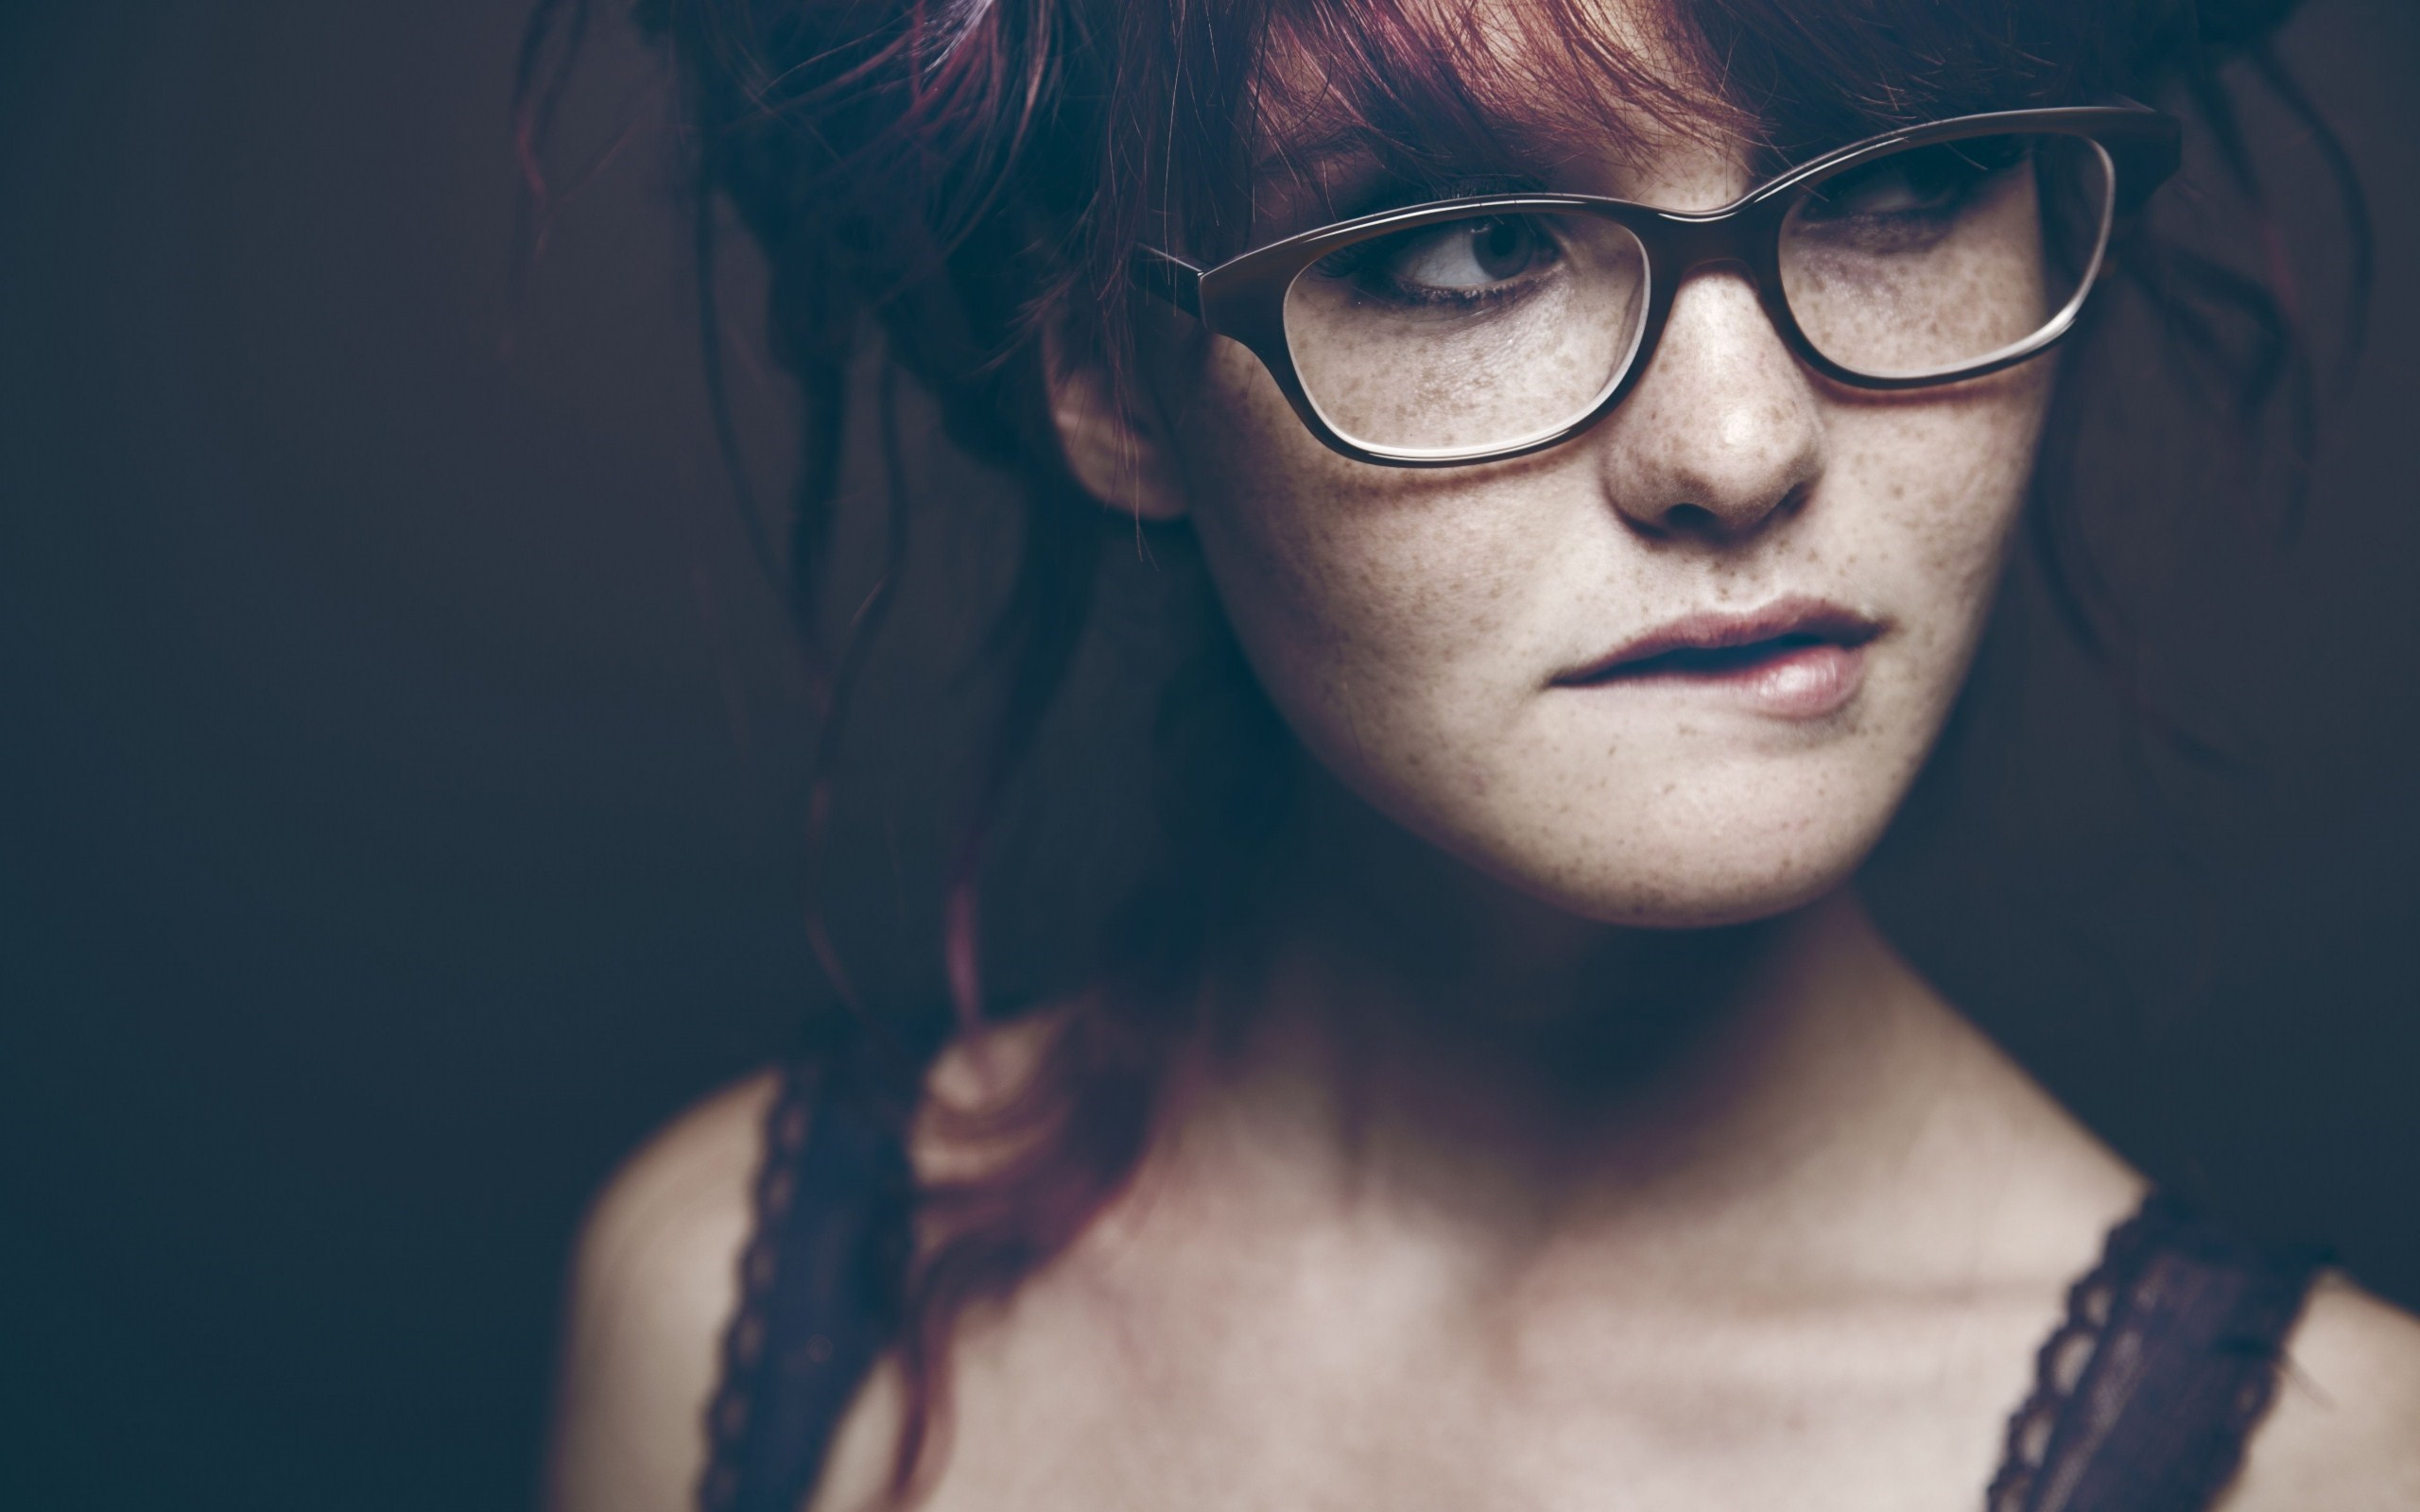 Lovely Redhead Girl Glasses Photography